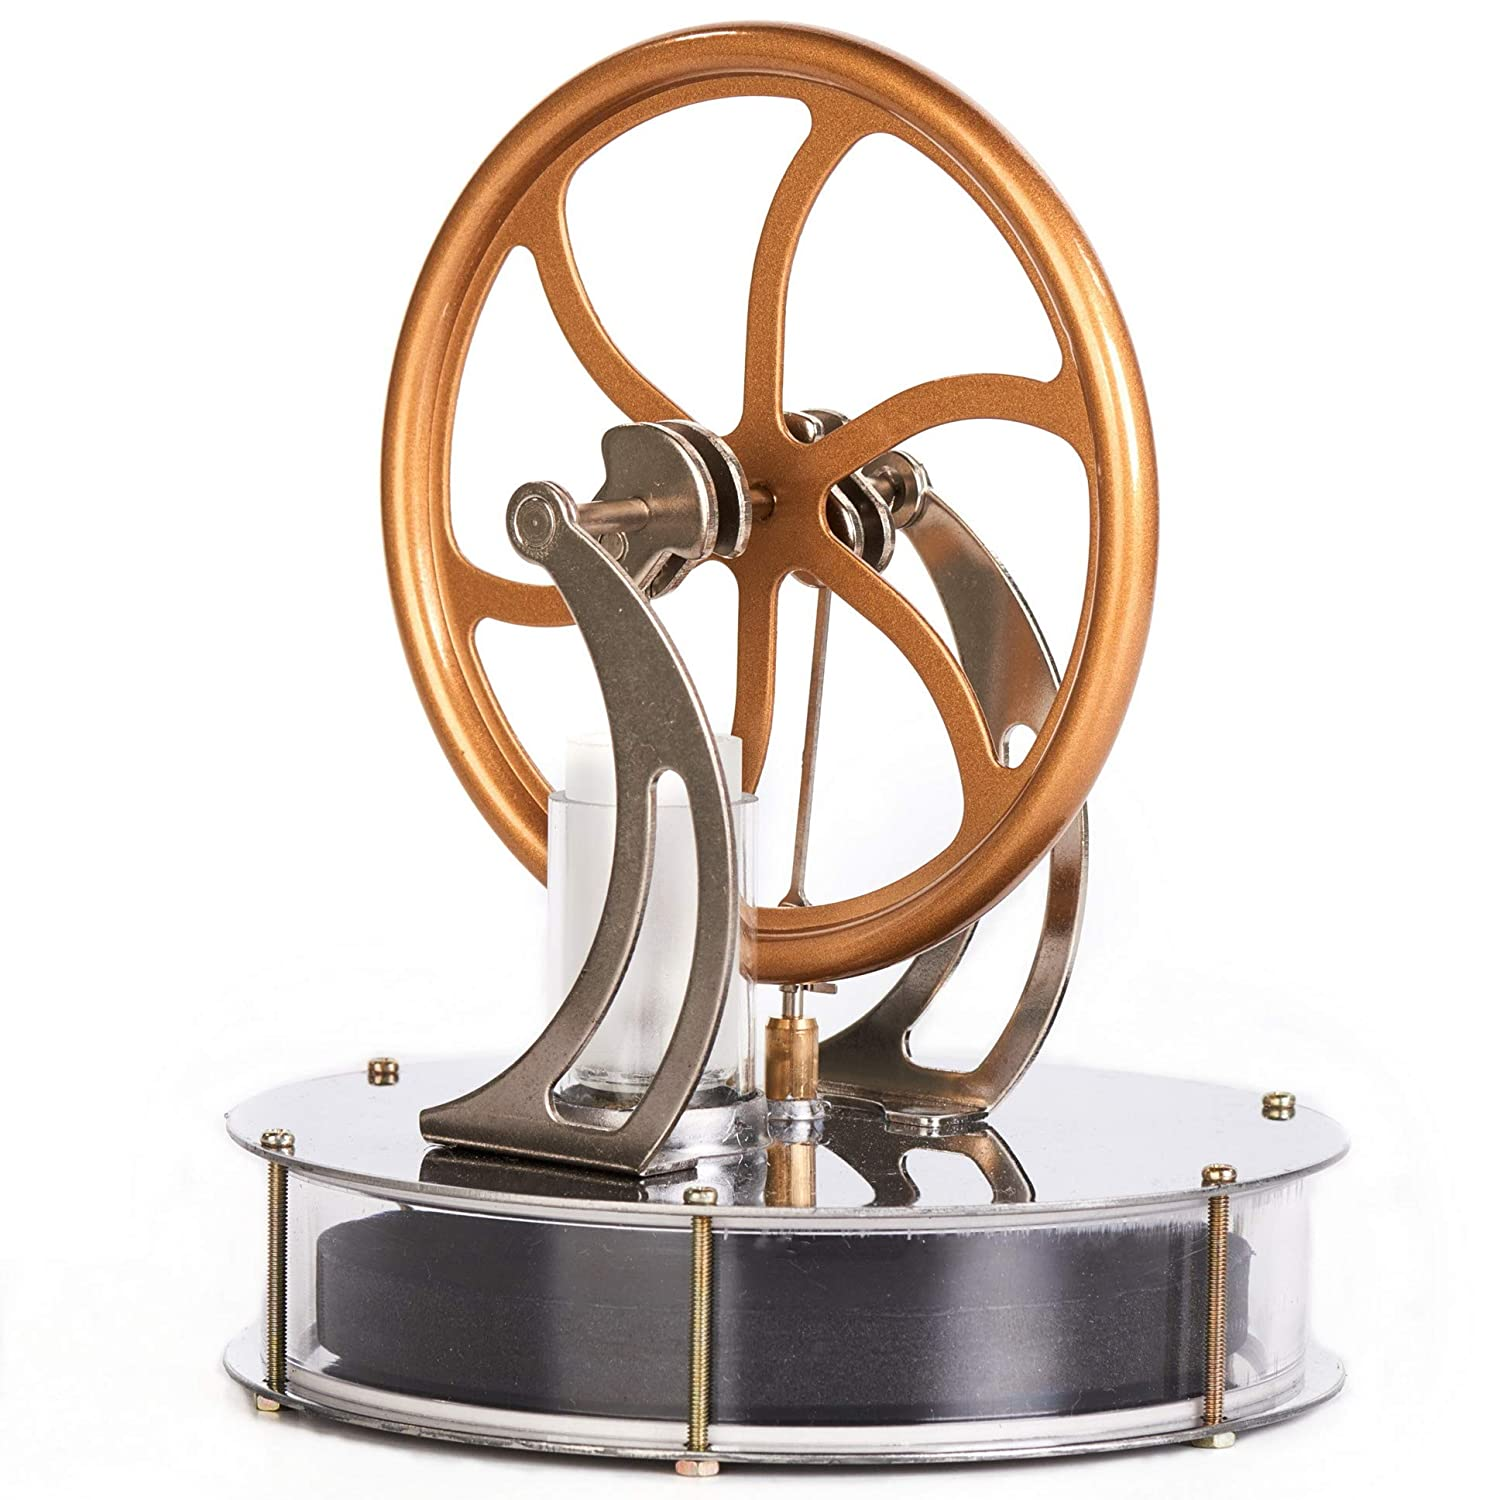 Sunnytech Low Temperature Stirling Engine Motor Steam Heat Education Model Toy Kit (LT001)